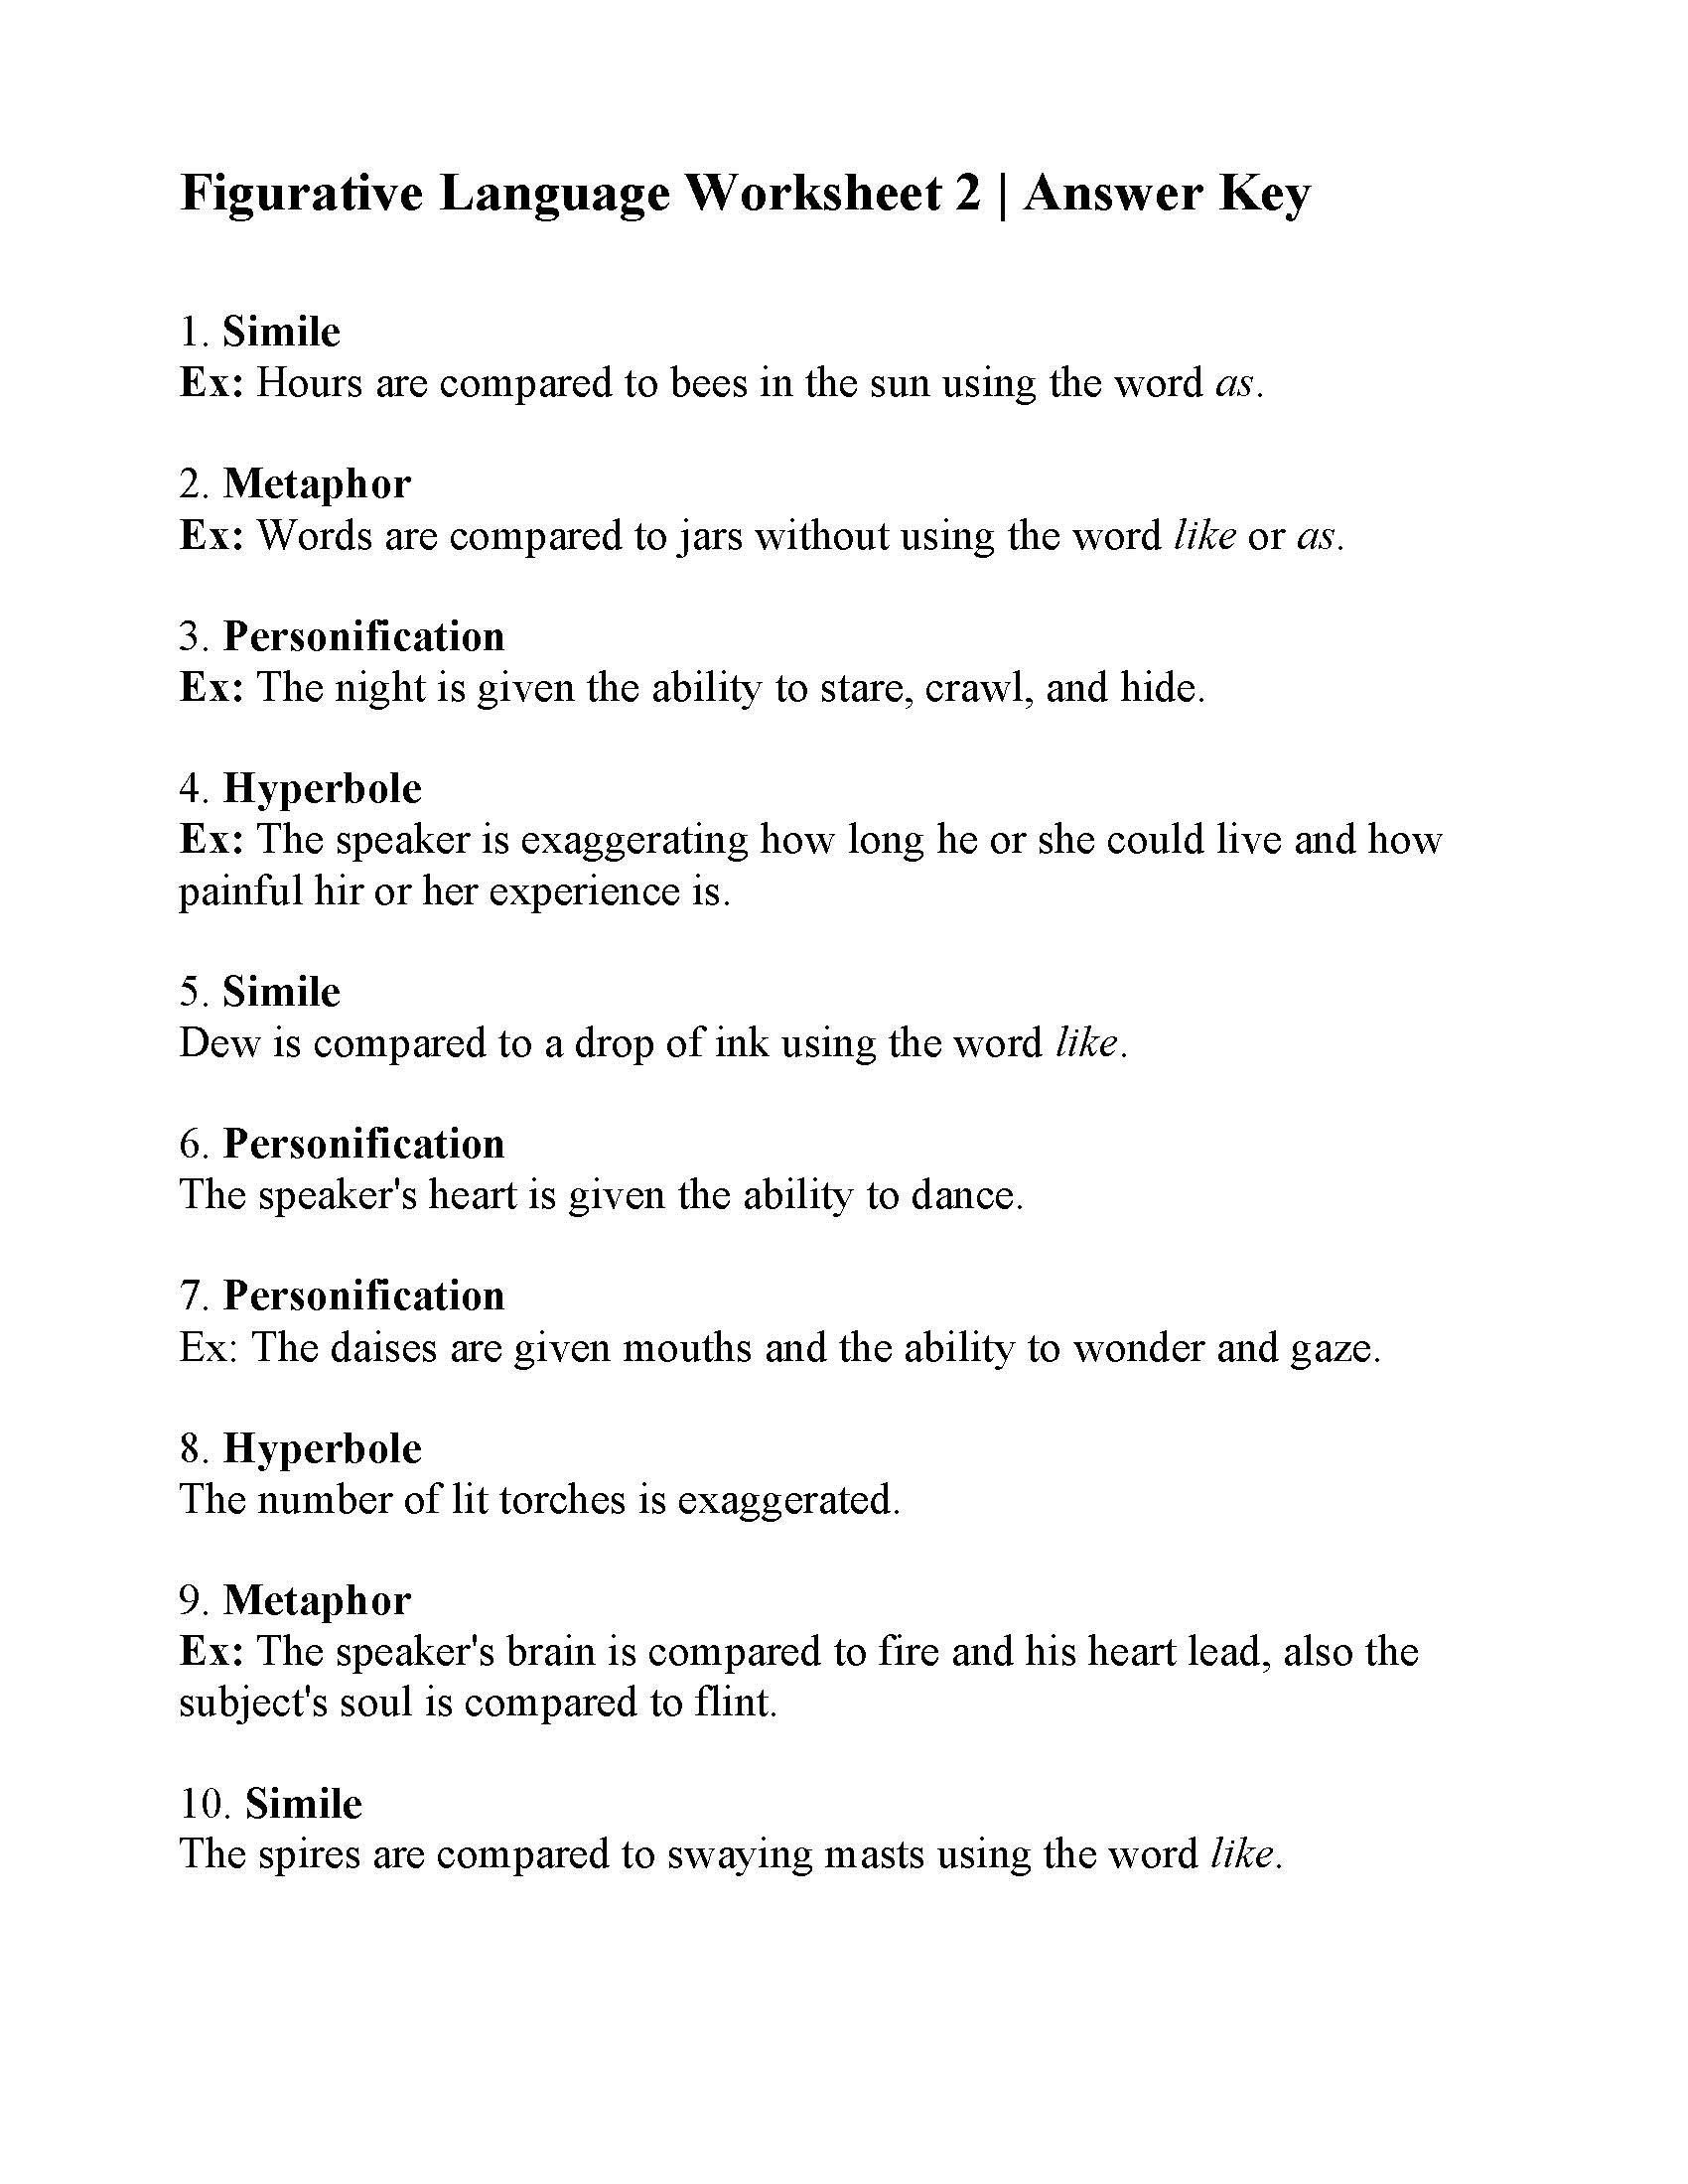 hight resolution of Figurative Language Worksheet 2 Answers Figurative Language Worksheet 2    Figurative language worksheet